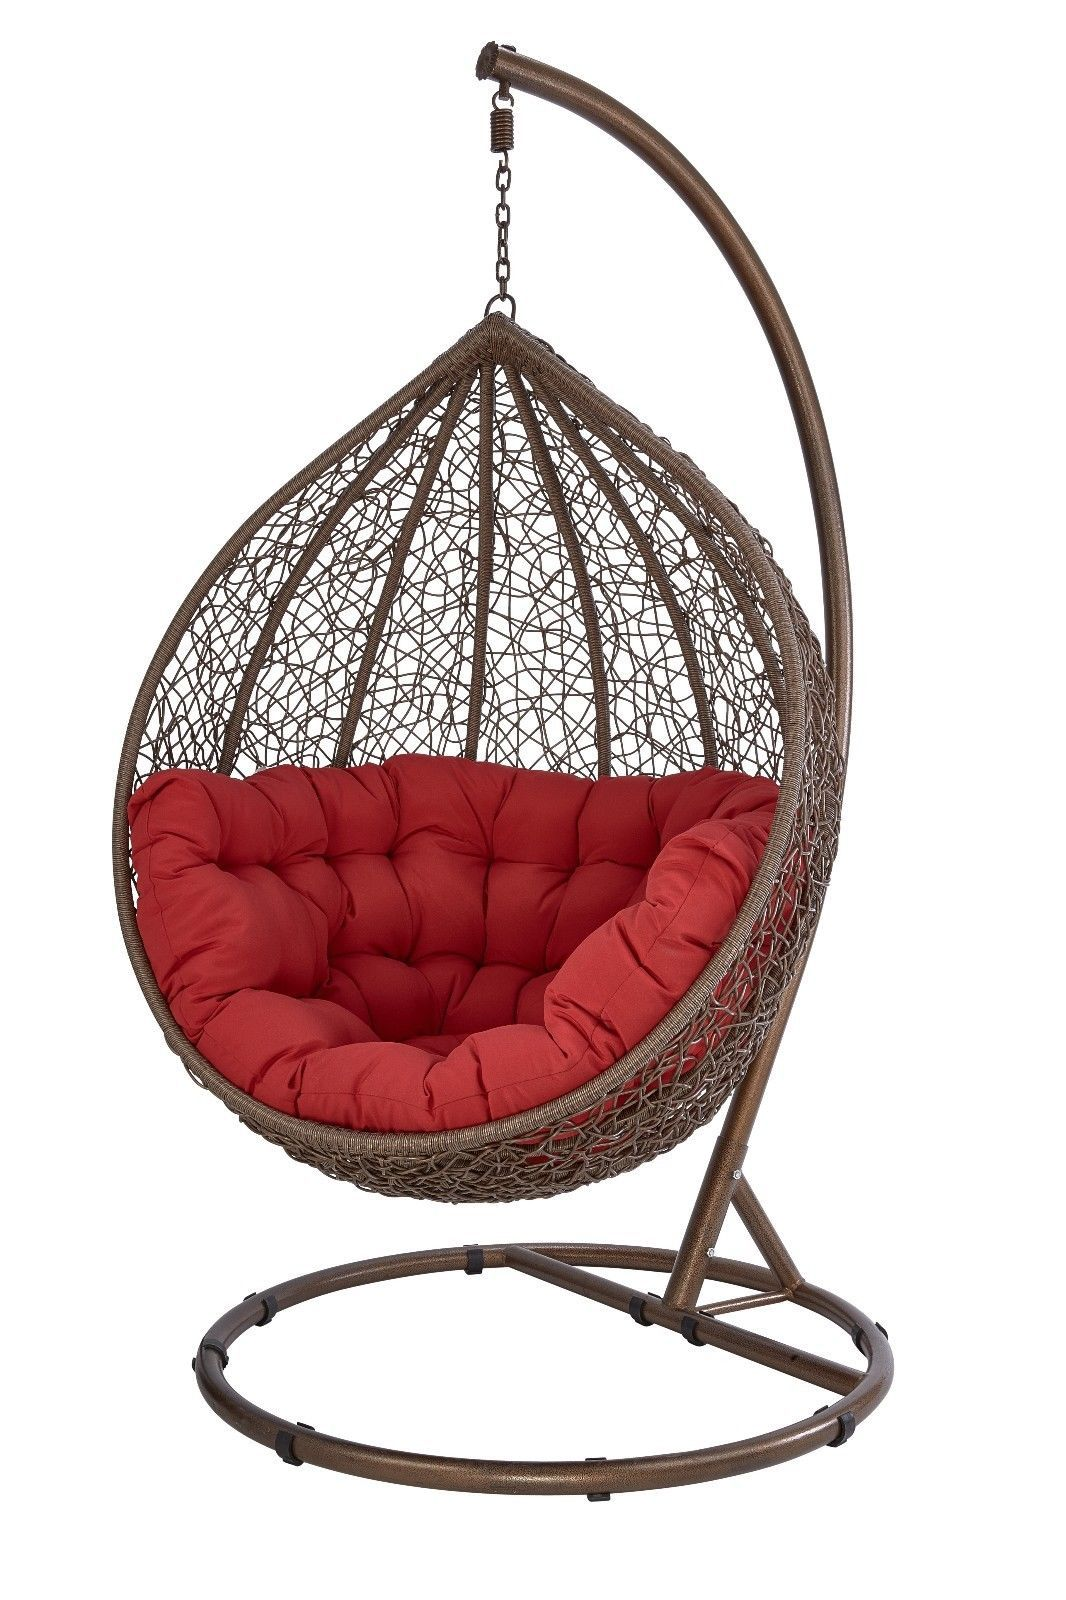 330; Casa Hanging Swing Chair. GREAT DEALS In some cases